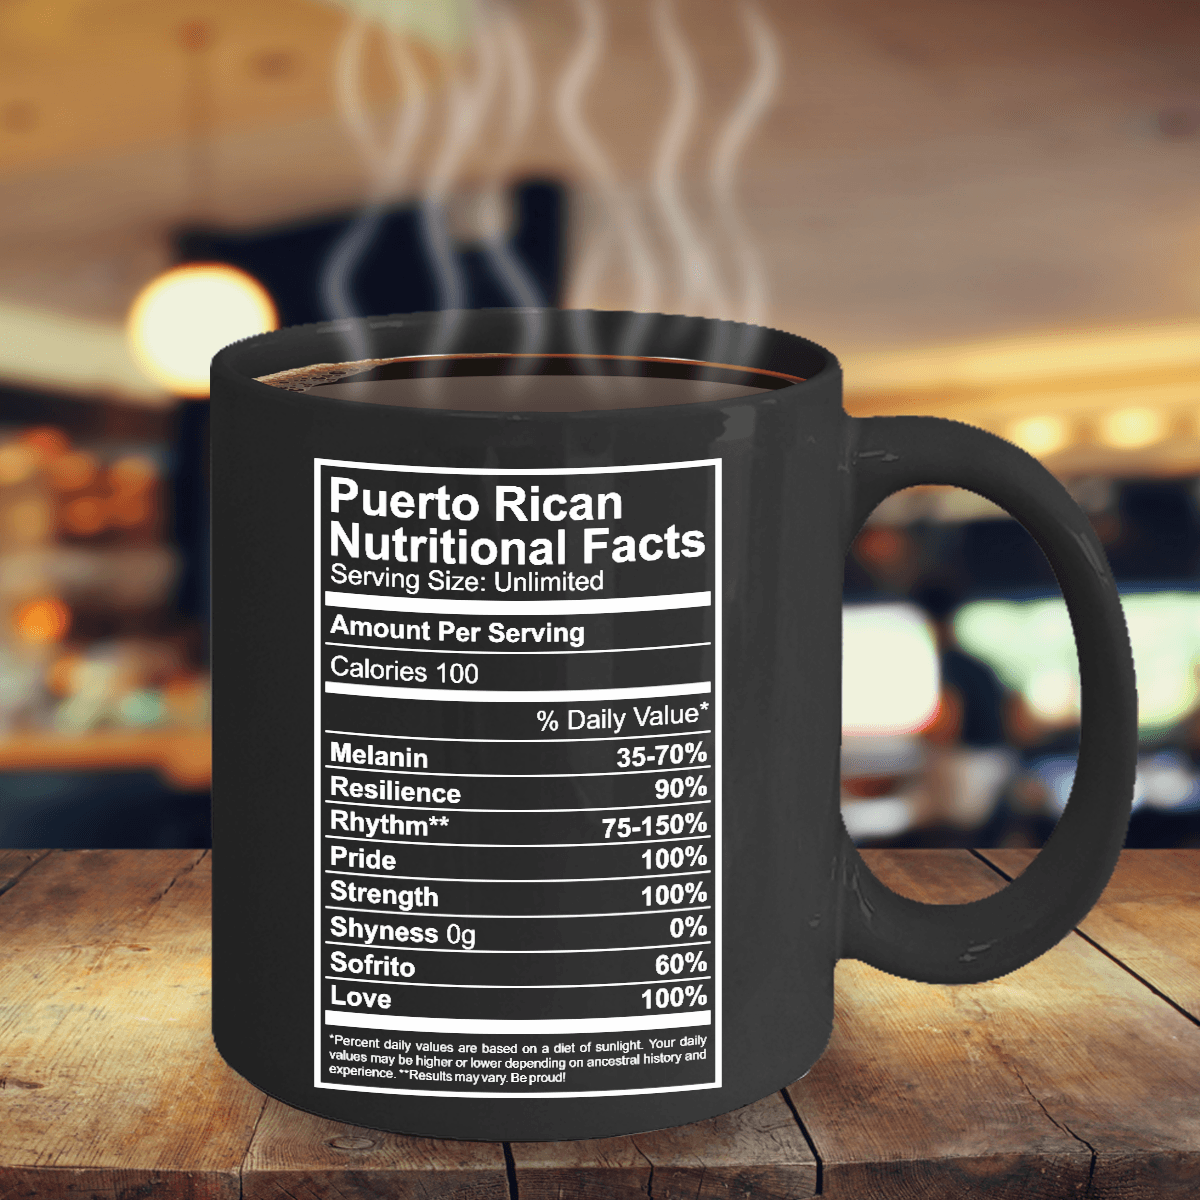 Puerto Rican Nutritional Facts